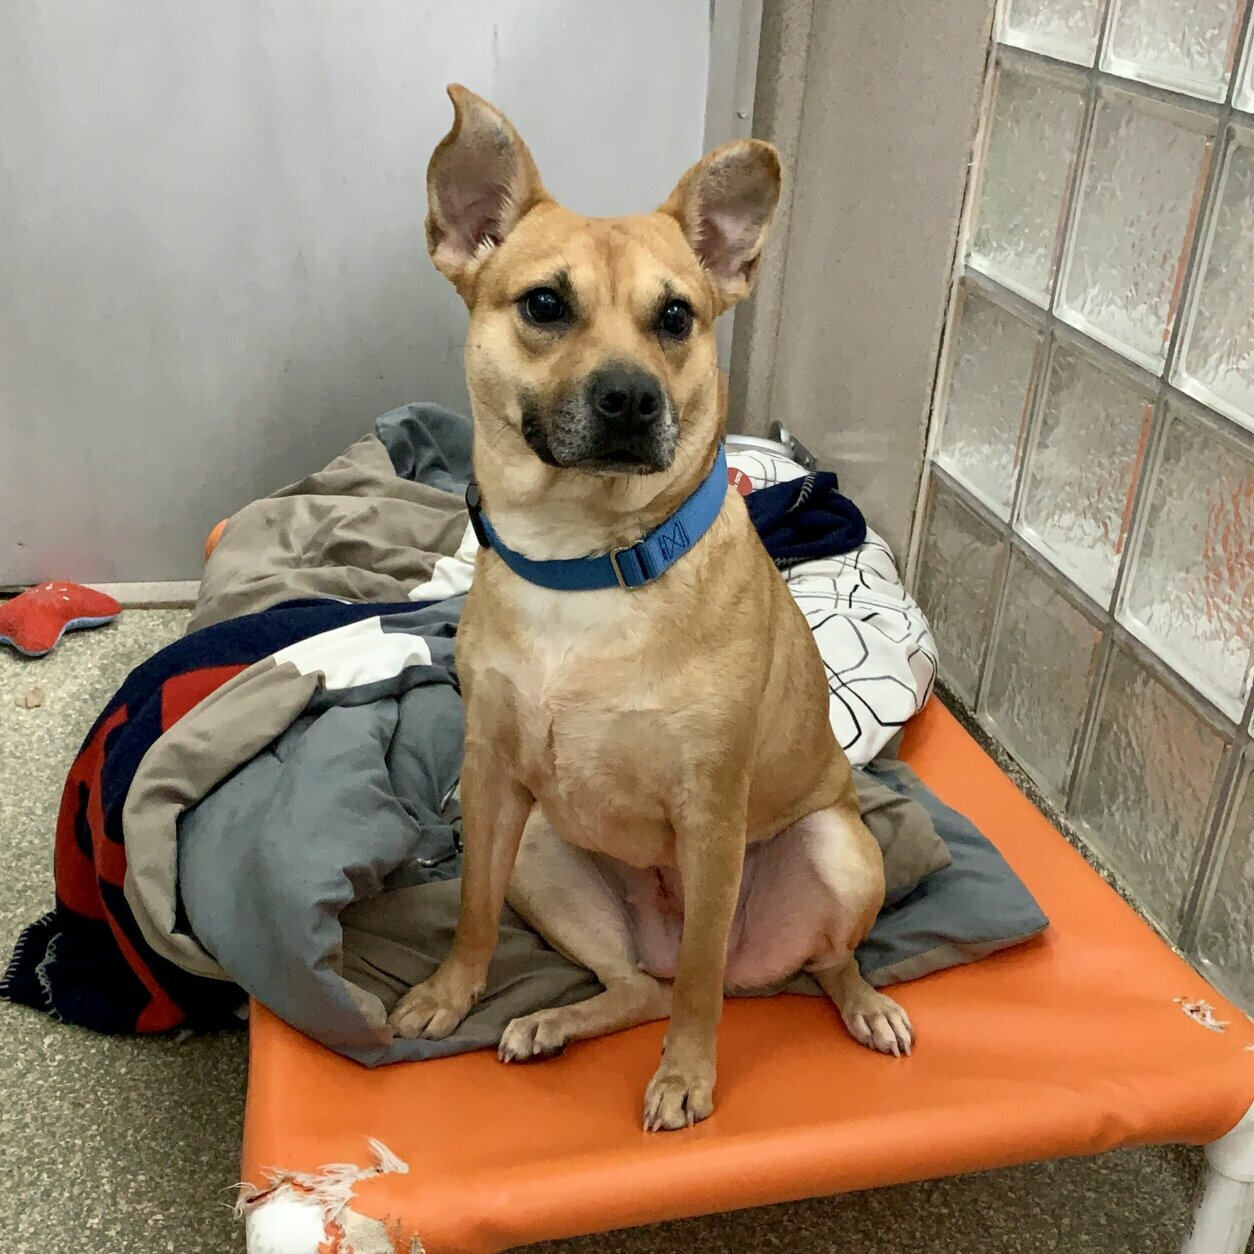 <p><strong>Pet of the Week: Nyla</strong></p> <p>Nyla came to the Humane Rescue Alliance from our partner shelter in Birmingham, Alabama. While we don't know much about her background, we do she is extremely affectionate, wiggly, and friendly. We'd love to help Nyla find a loving home here in the D.C. area where she can relax and continue to work on her confidence. Think this sweet southern girl is the one for you? Meet her at HRA's Oglethorpe Street adoption center.</p>